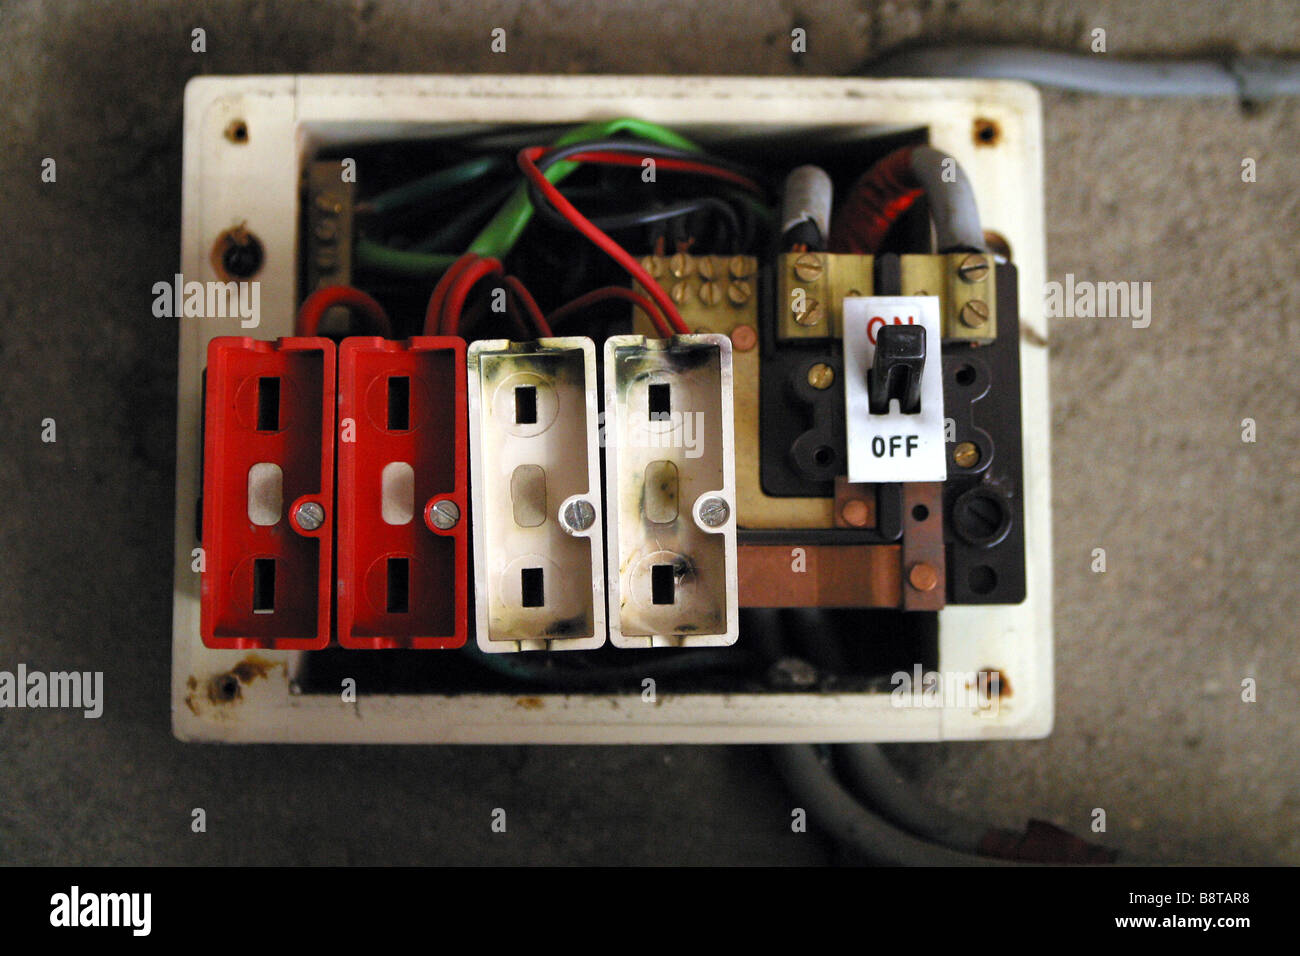 old style consumer unit electrical wire fuse box stock photo rh alamy com old fuse box safety old fuse box remedies